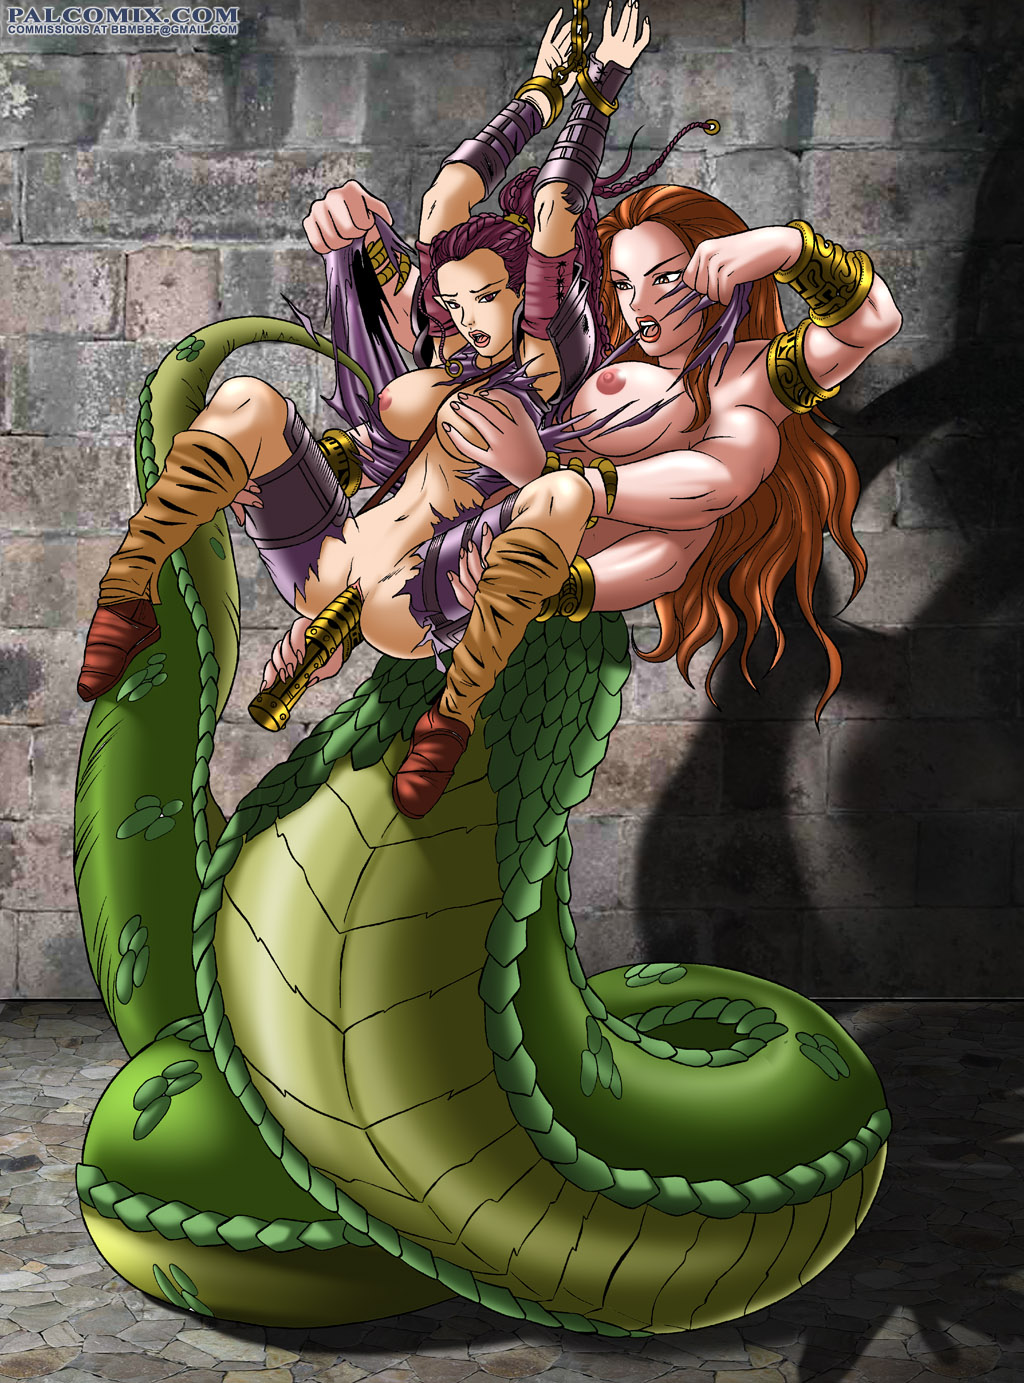 Dungeons and dragons porn fantasy anime photo